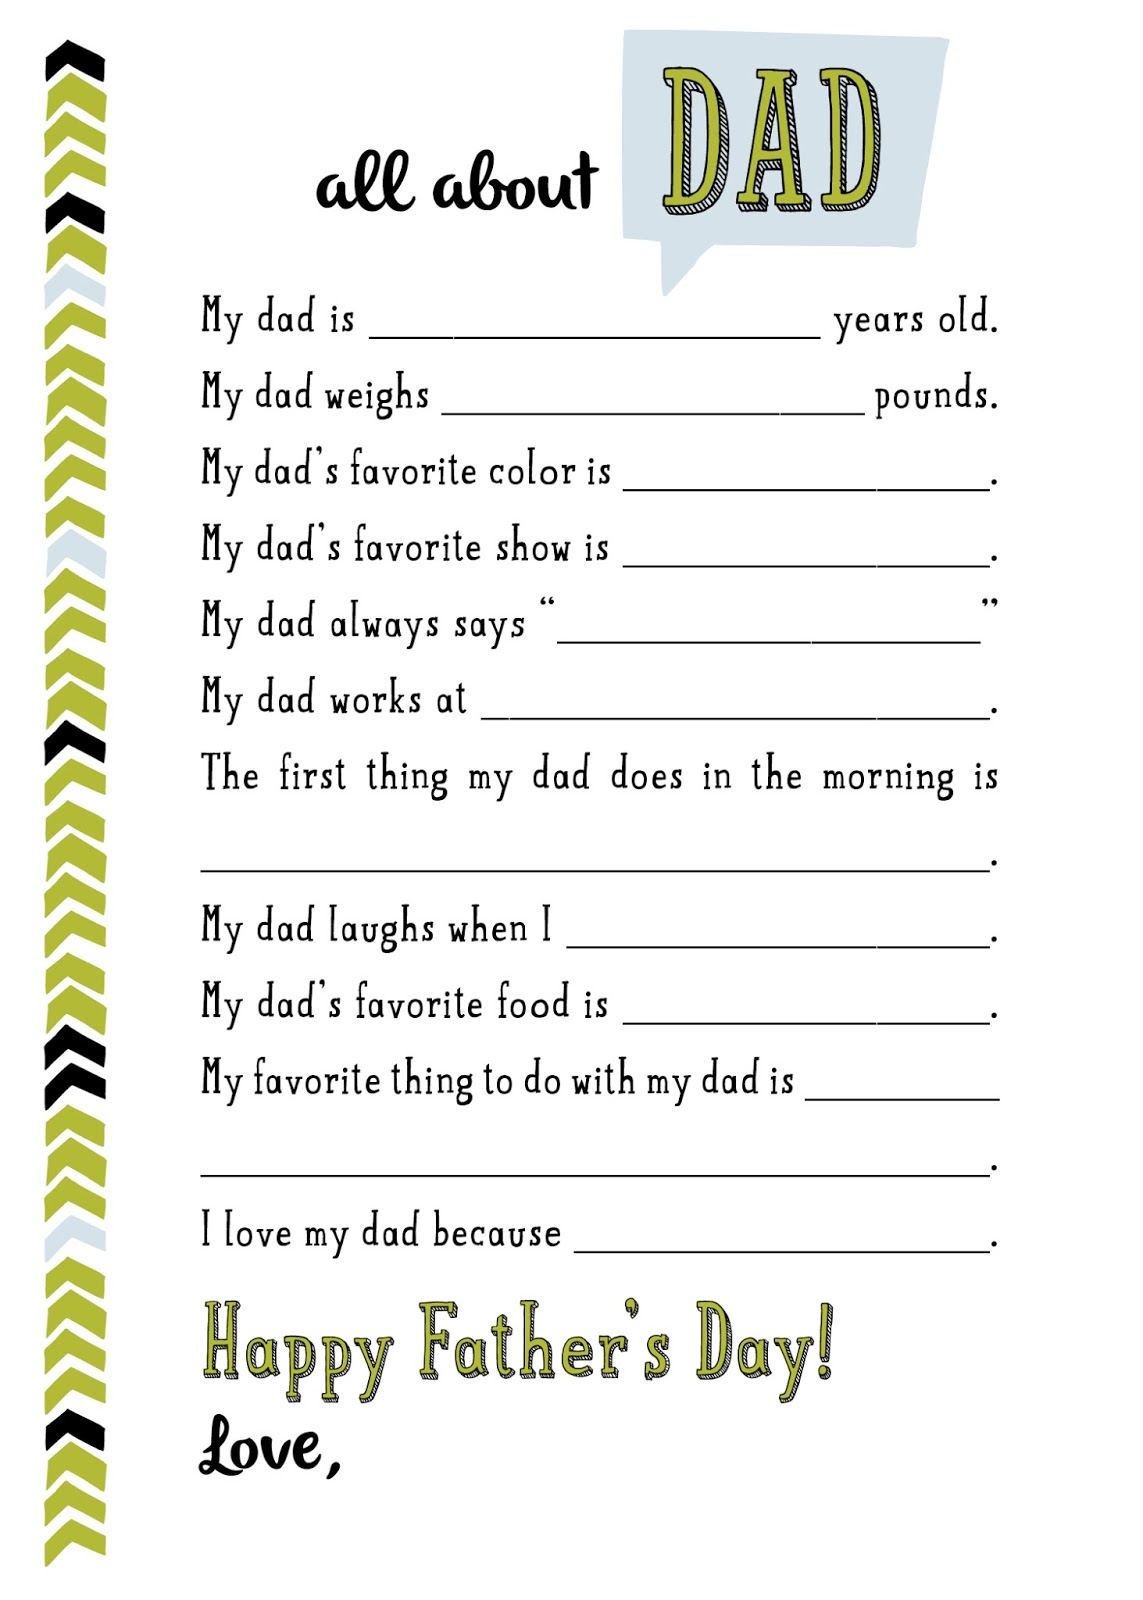 River Amp Bridge All About Dad Free Printable